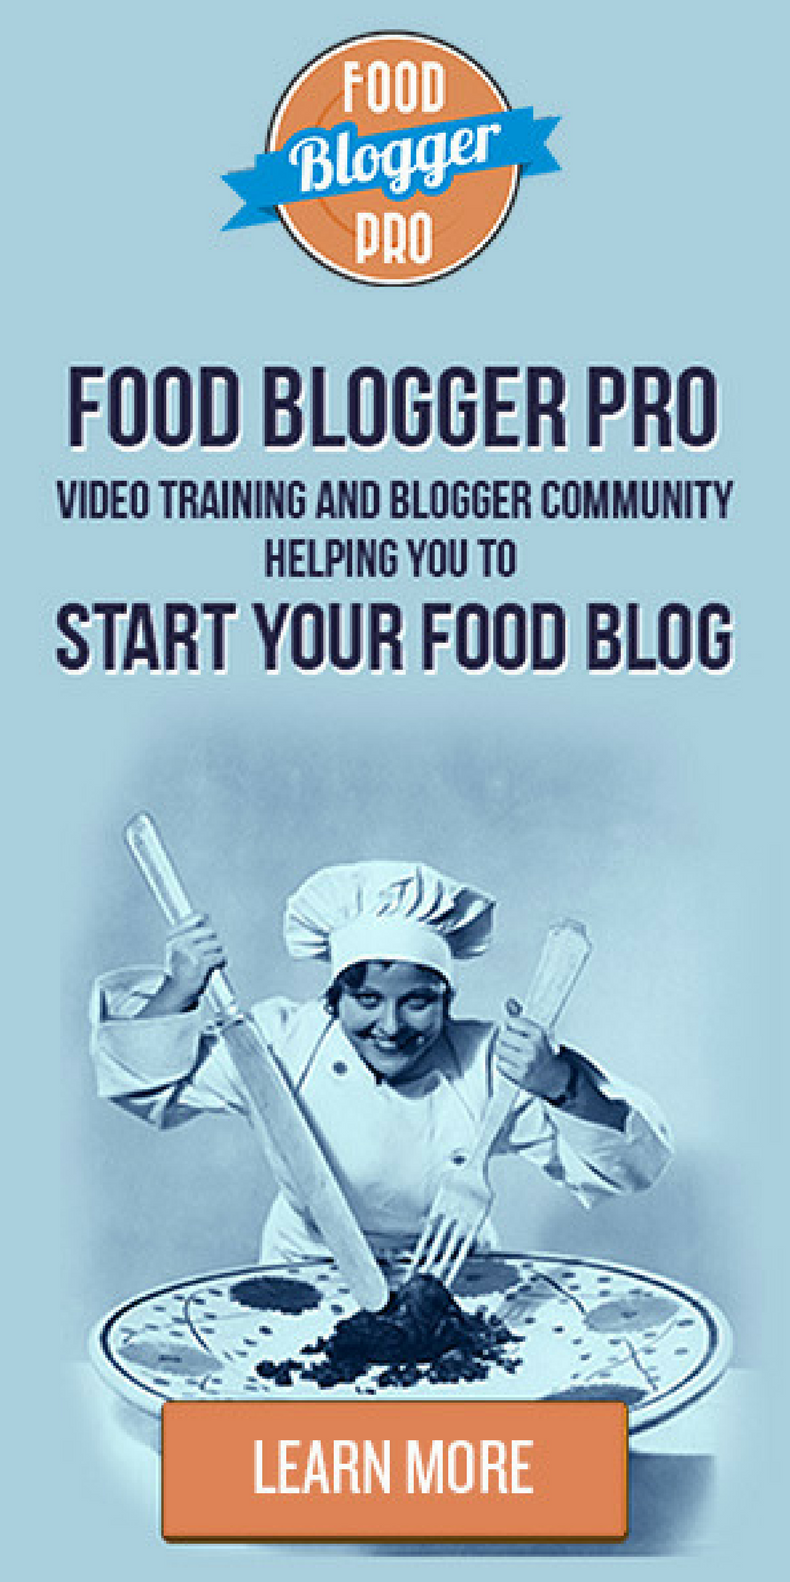 Learn how to grow your food blog with Food Blogger Pro. FBP offers great resources for improving food photography, SEO, and social media!grow food blog | food blogger pro | food photography | food videos | improve SEO | learn social media for bloggers | why join food blogger pro | increase blog traffic | how to blog | grow your business